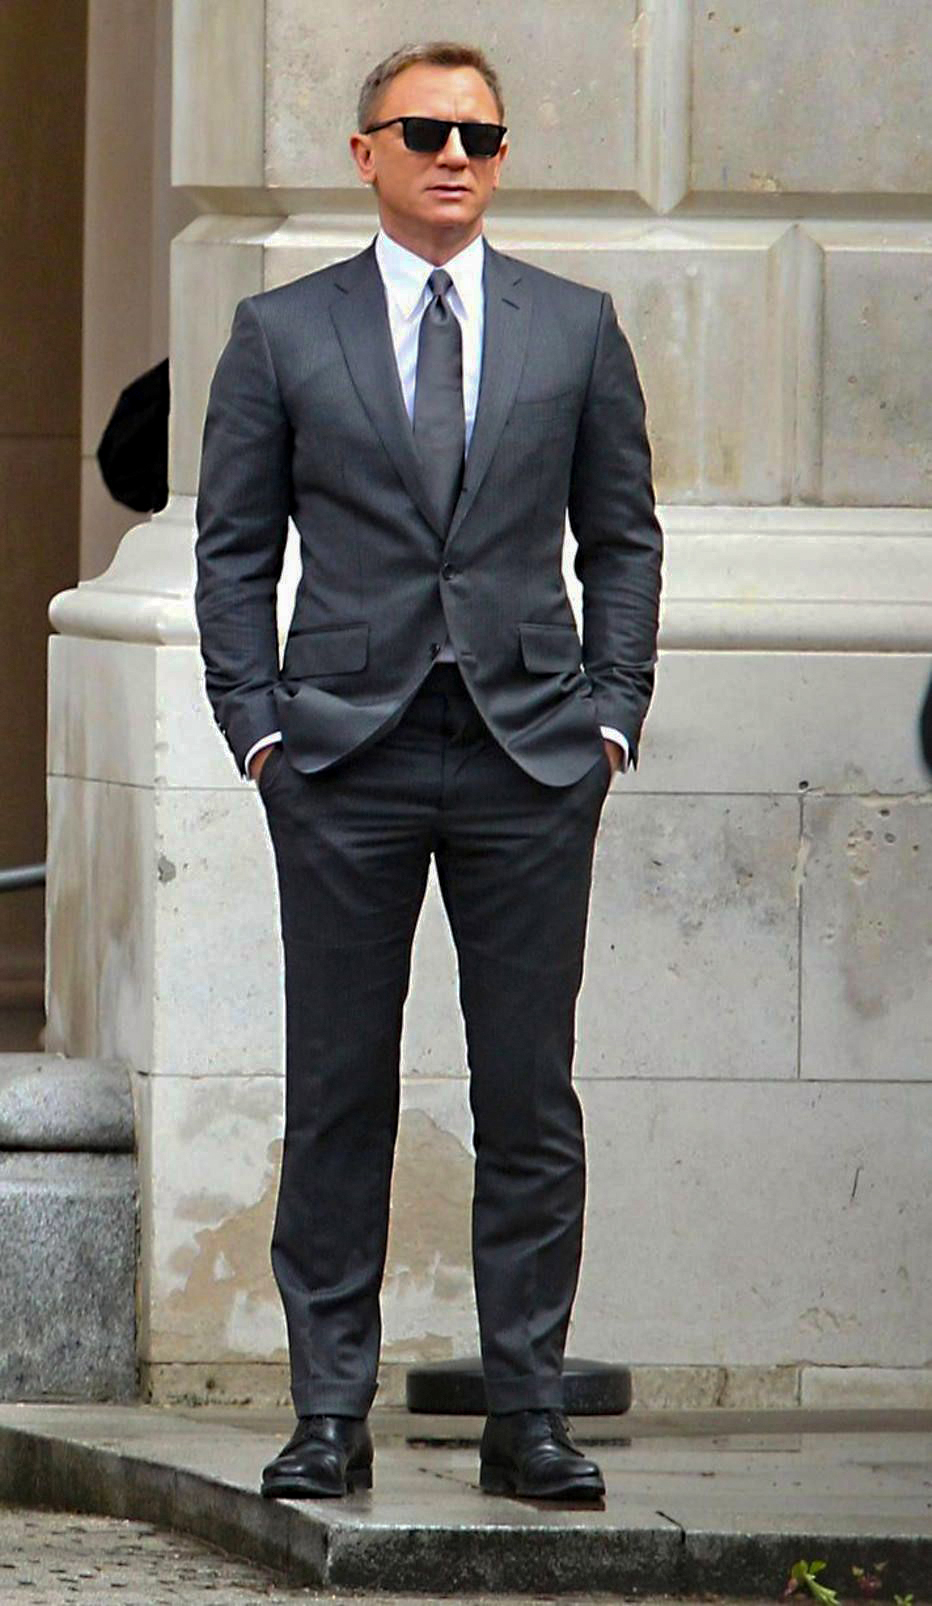 Dark grey (charcoal) suit, white shirt, grey tie and black shoes color combination